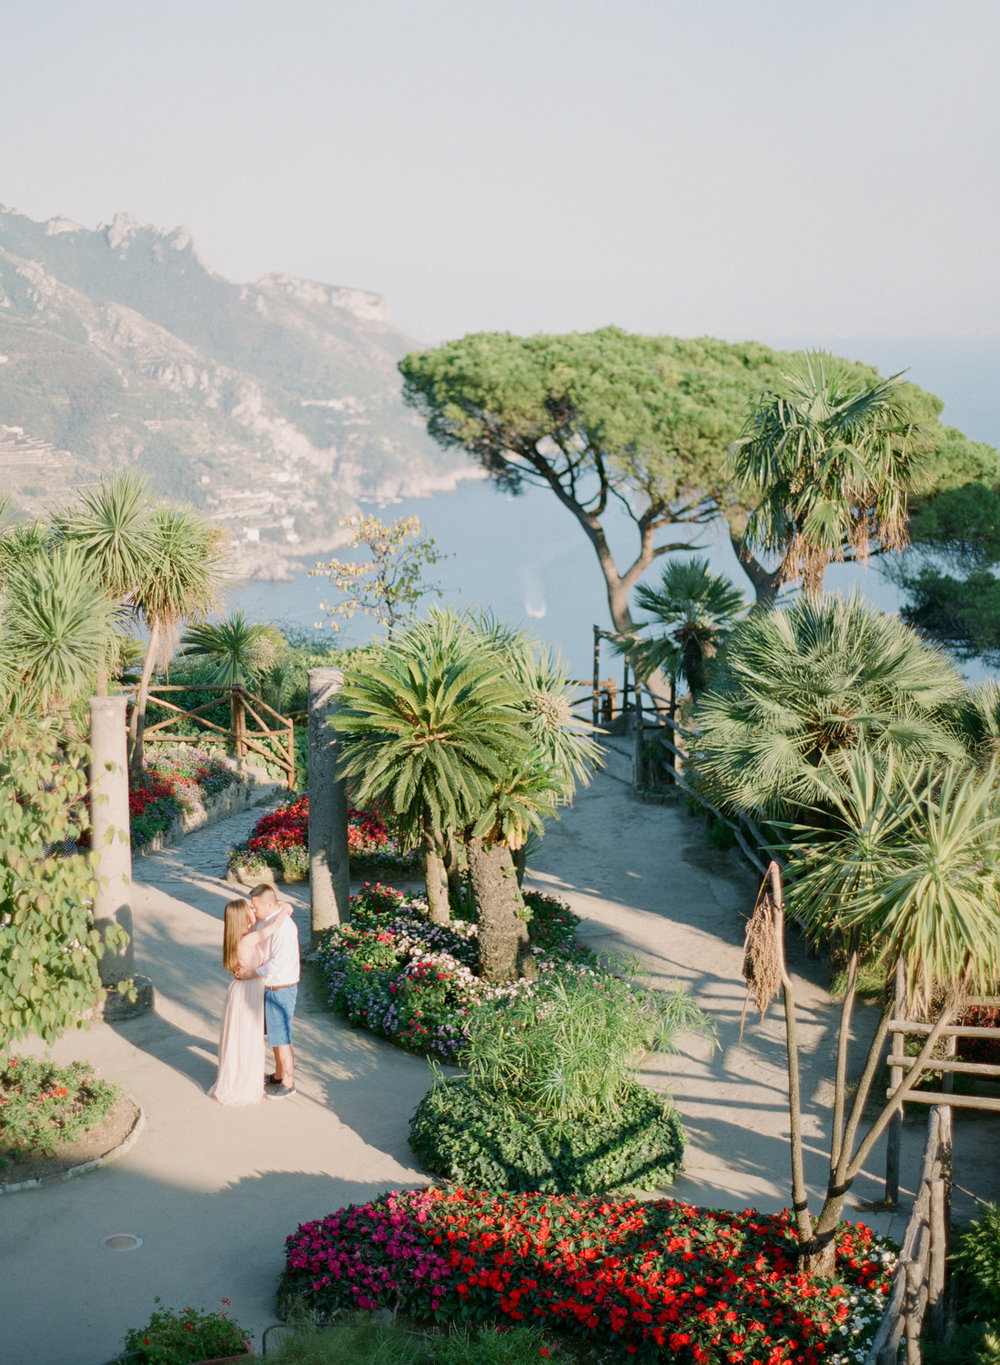 ravello wedding photographer amalfi coast wedding nikol bodnarova film wedding photographer_14.JPG